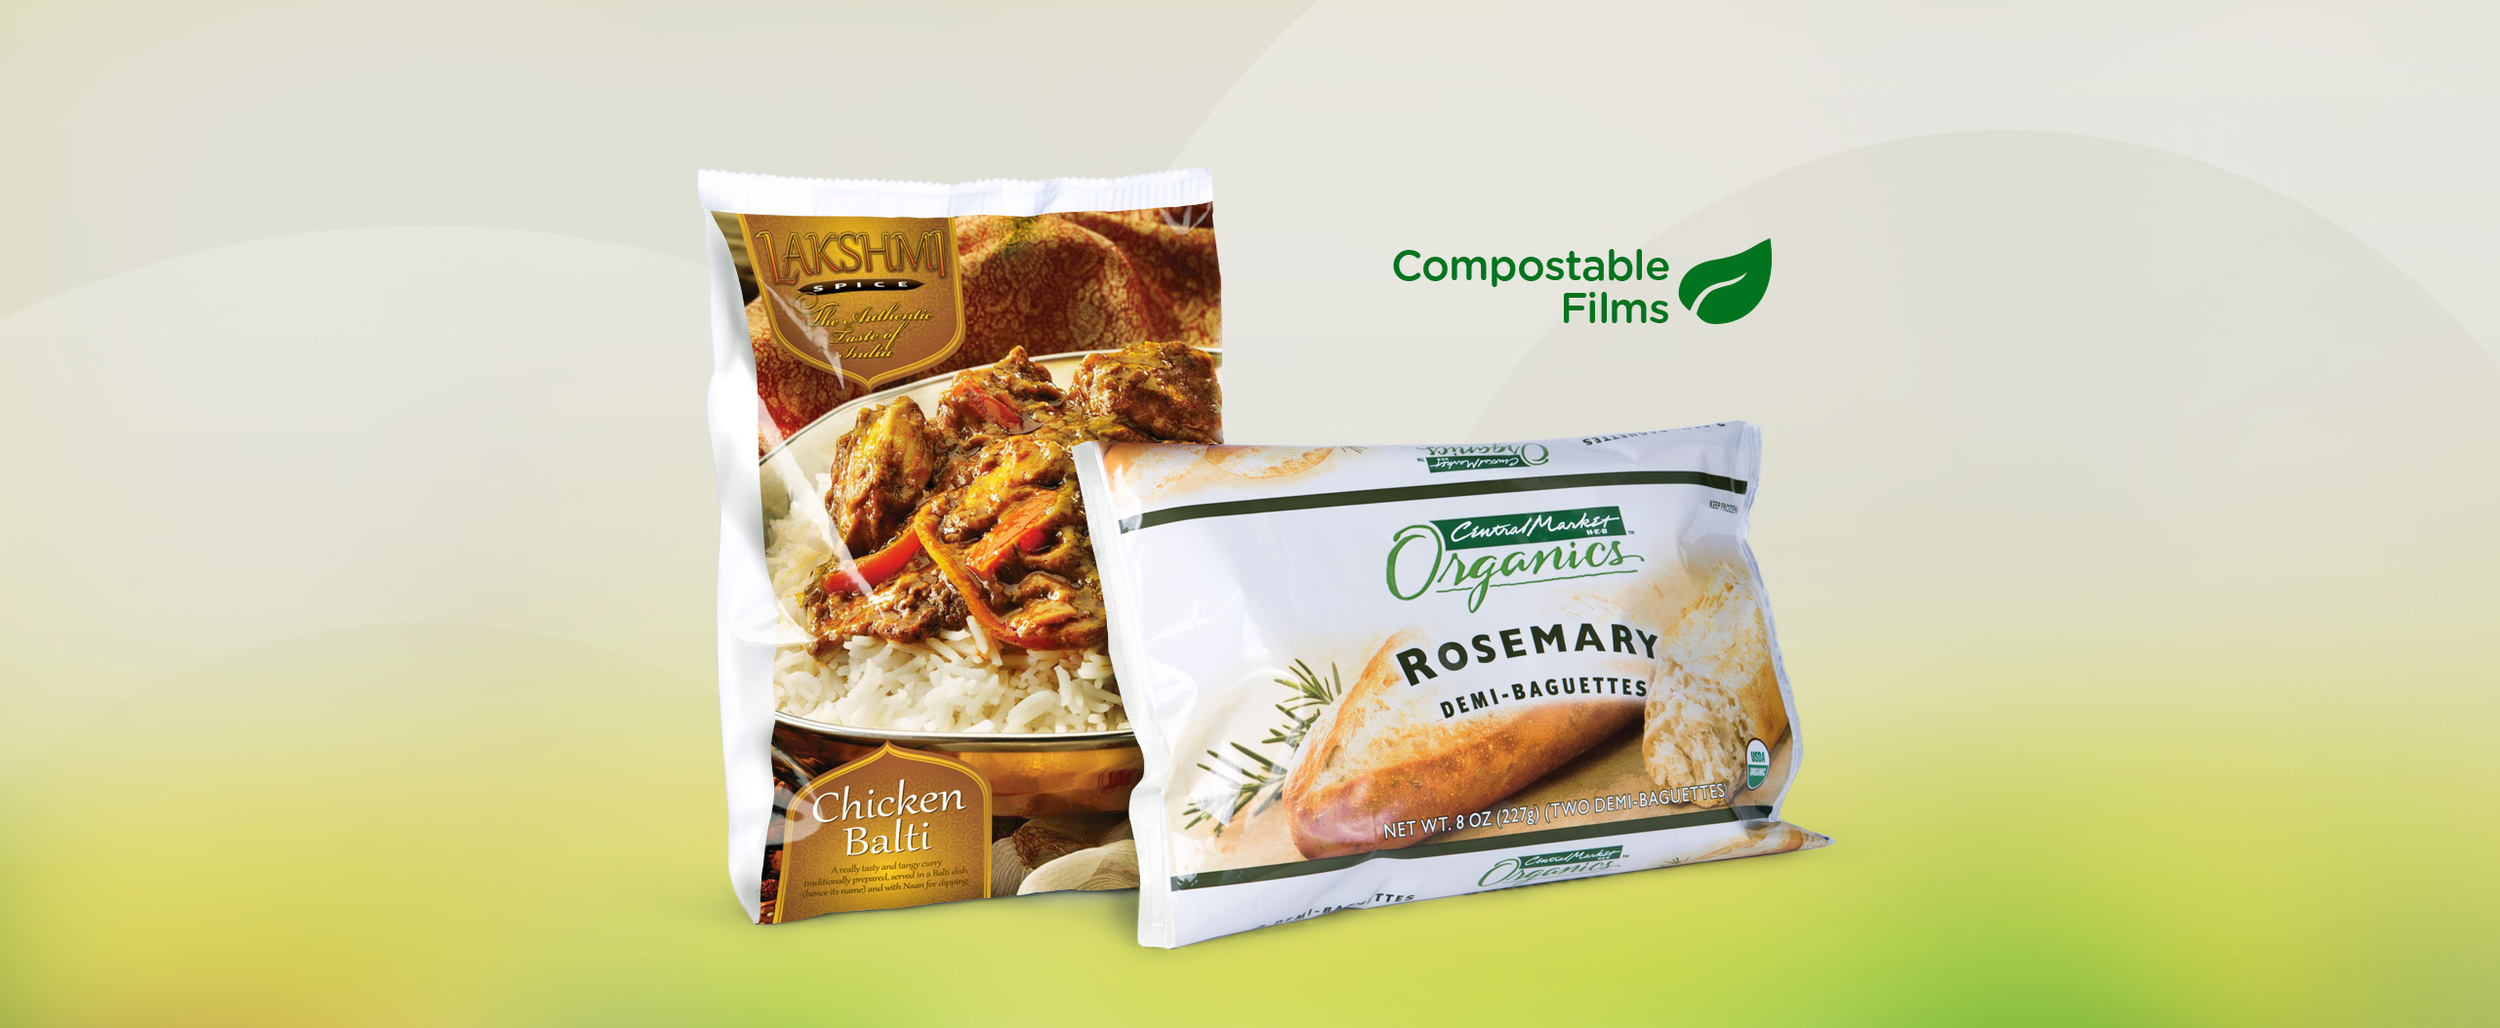 Sunshine_Compostable_Films_Bag2016.jpg